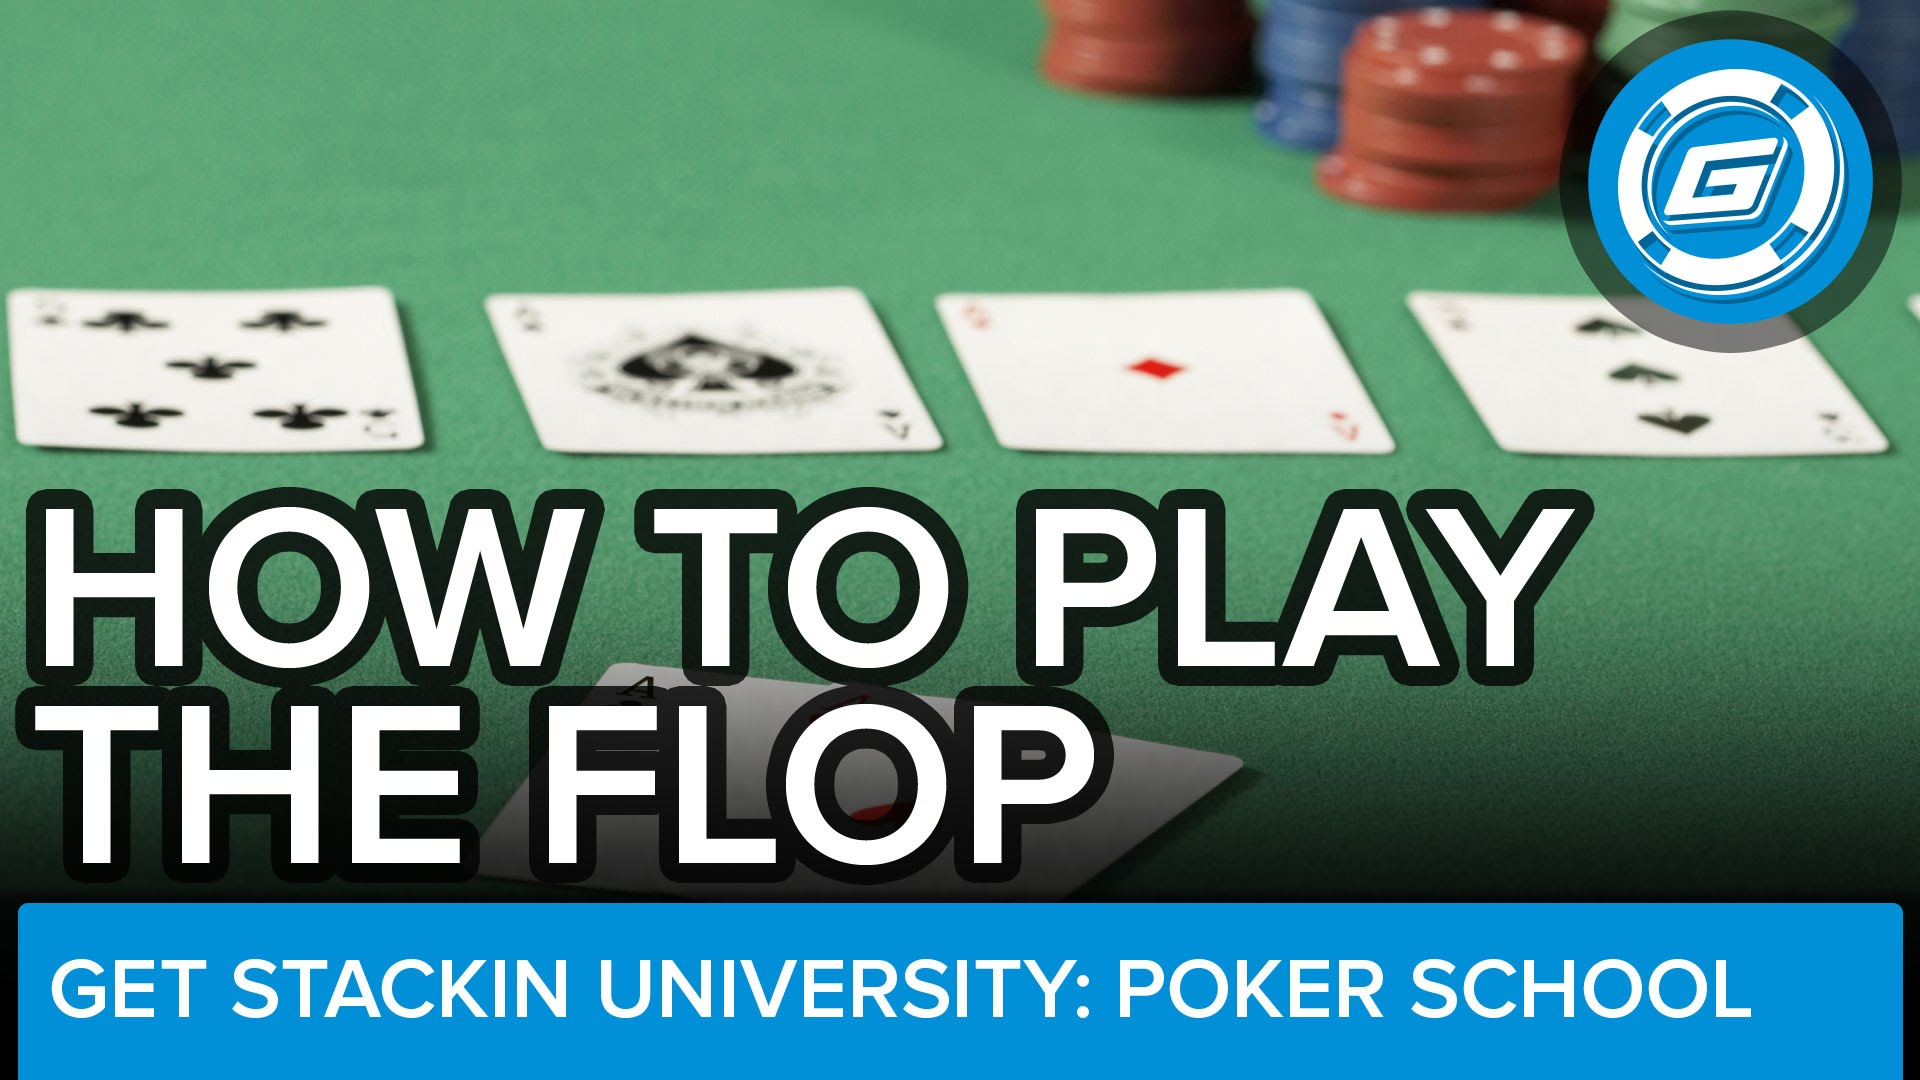 How To Play The Flop (NLH) - Winning Poker Strategy - LESSON #9